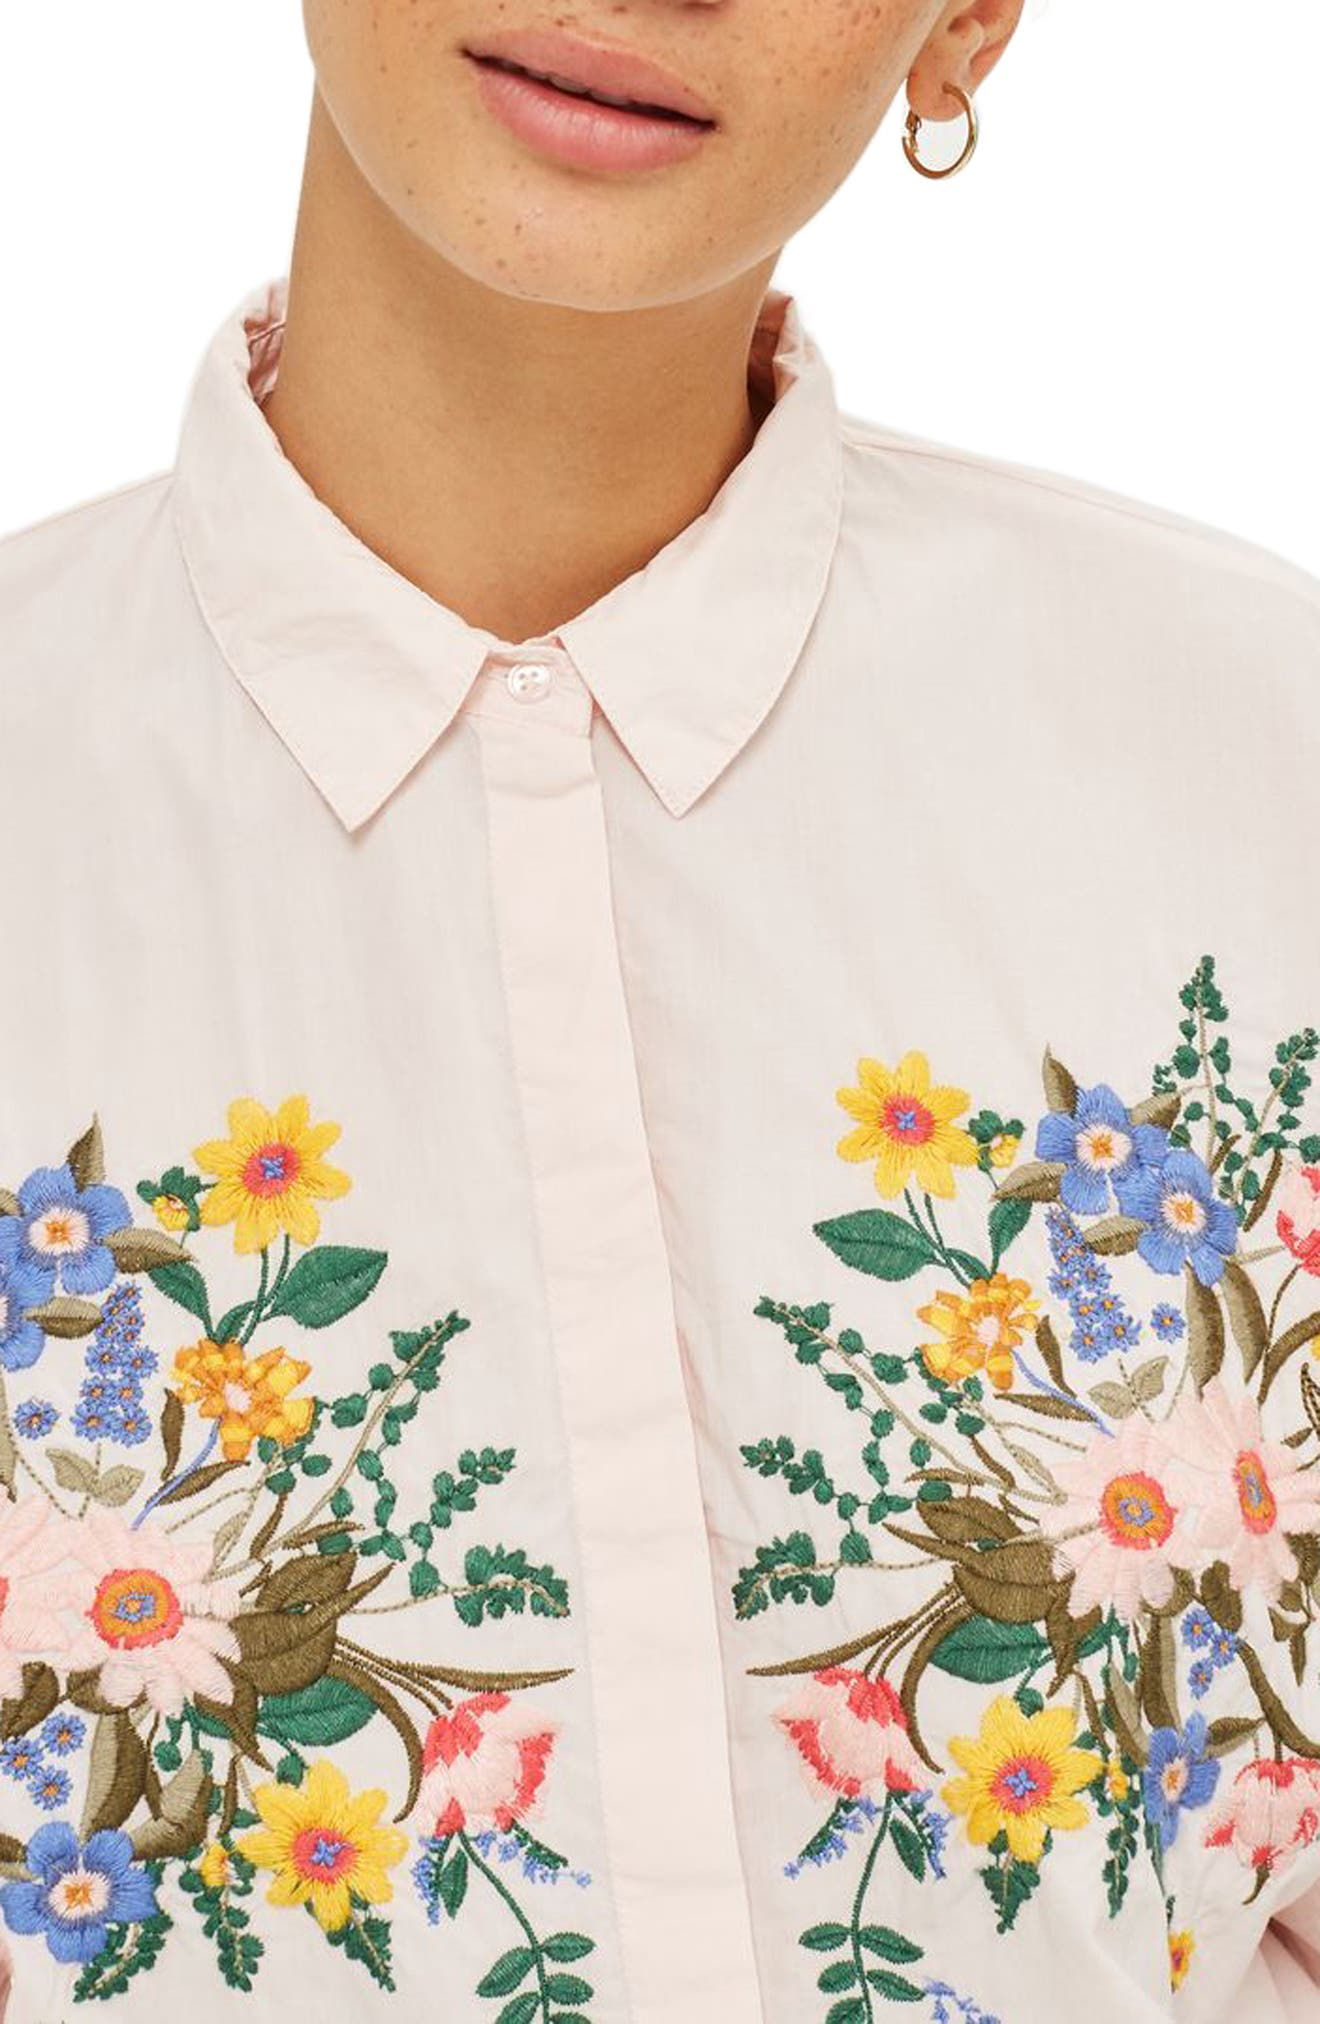 Forest Floral Embroidered Shirt,                             Alternate thumbnail 3, color,                             680